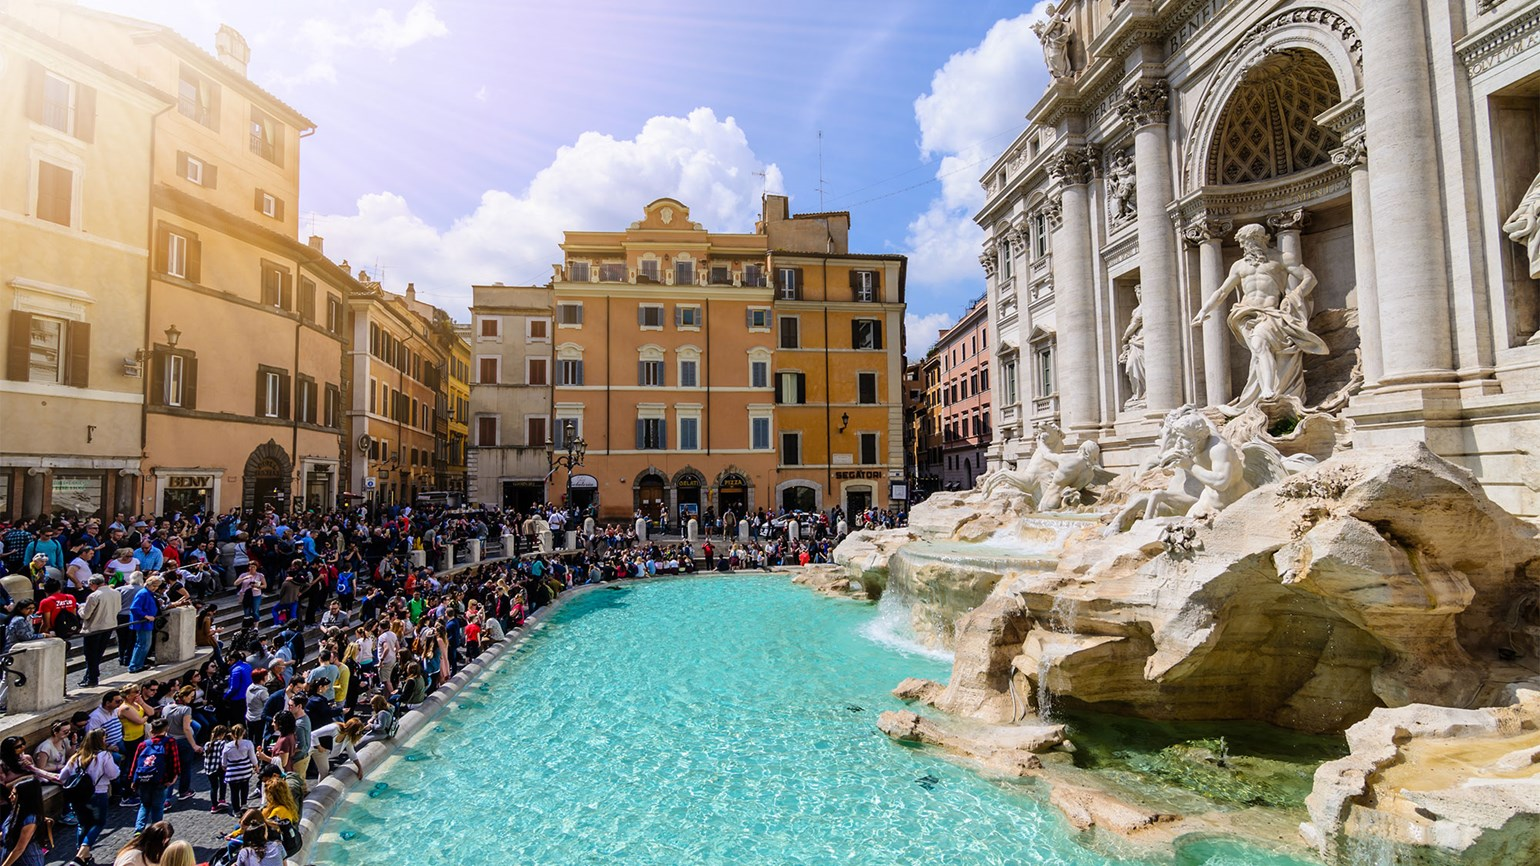 Trevi Fountain, Rome [Credit: JIMMOYHT/Shutterstock.com]